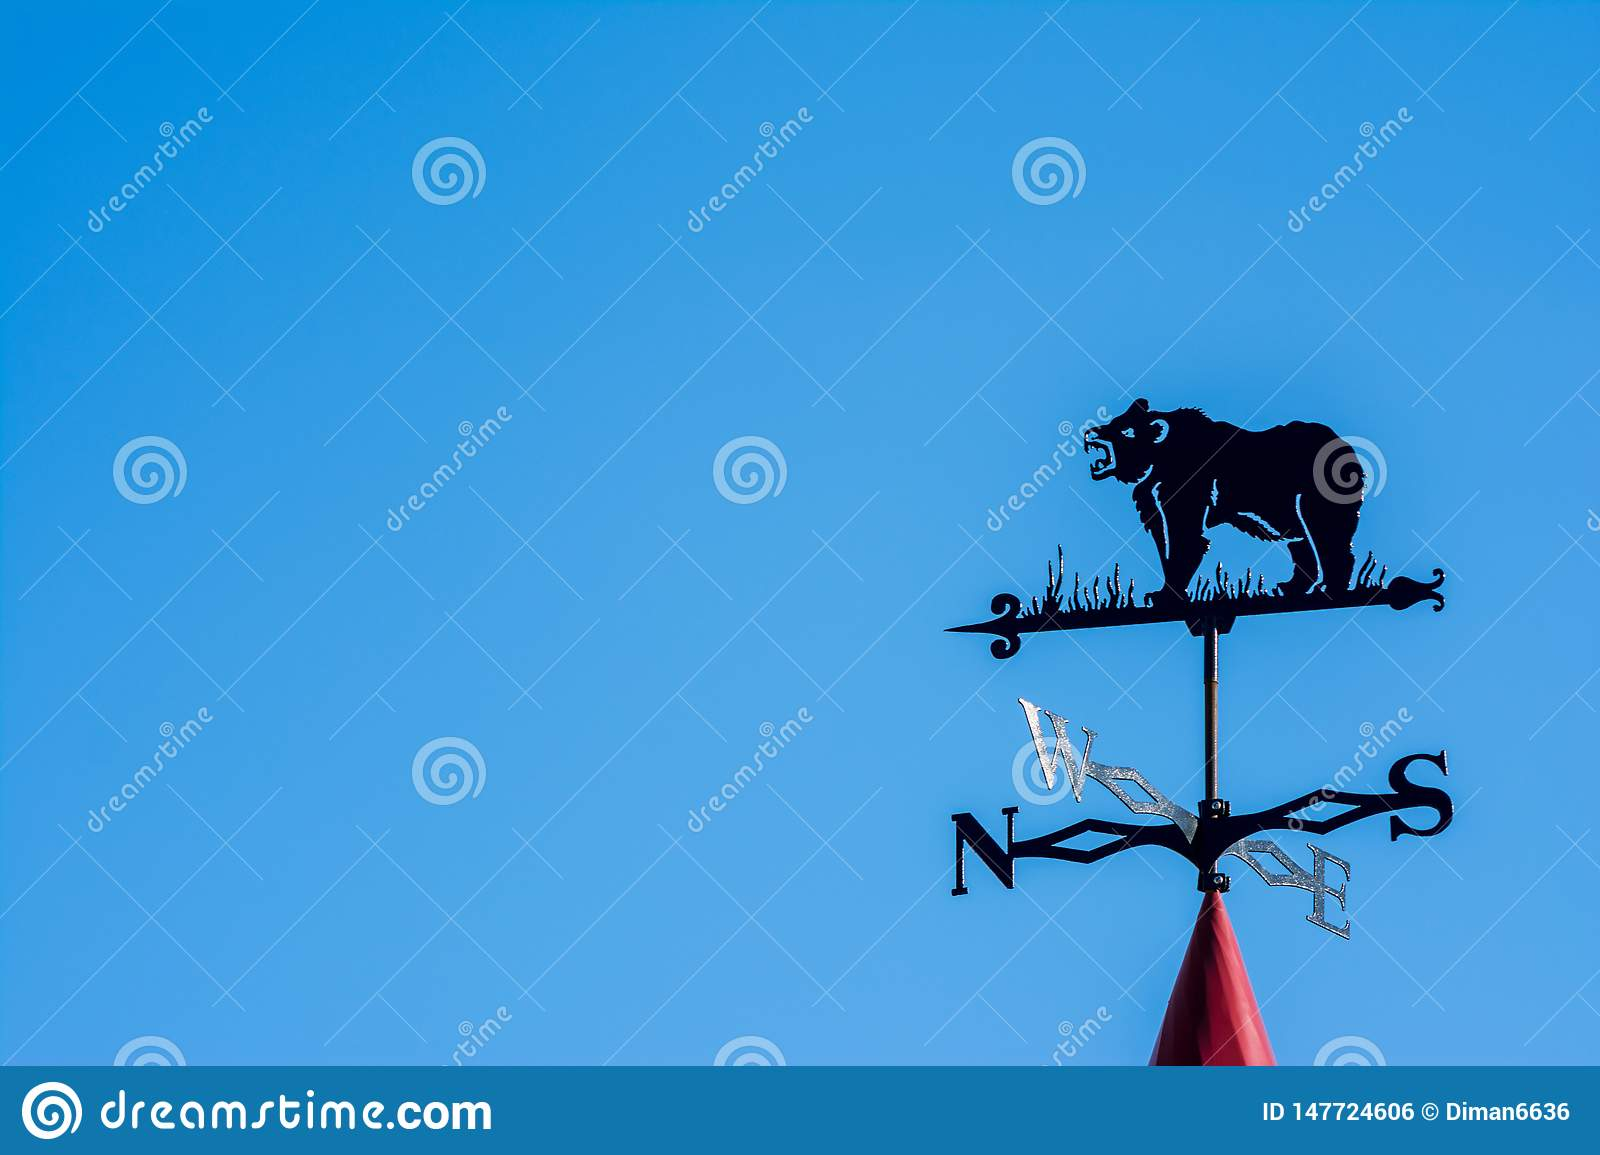 Weathervane in the form of a bear. Side of the world against the sky